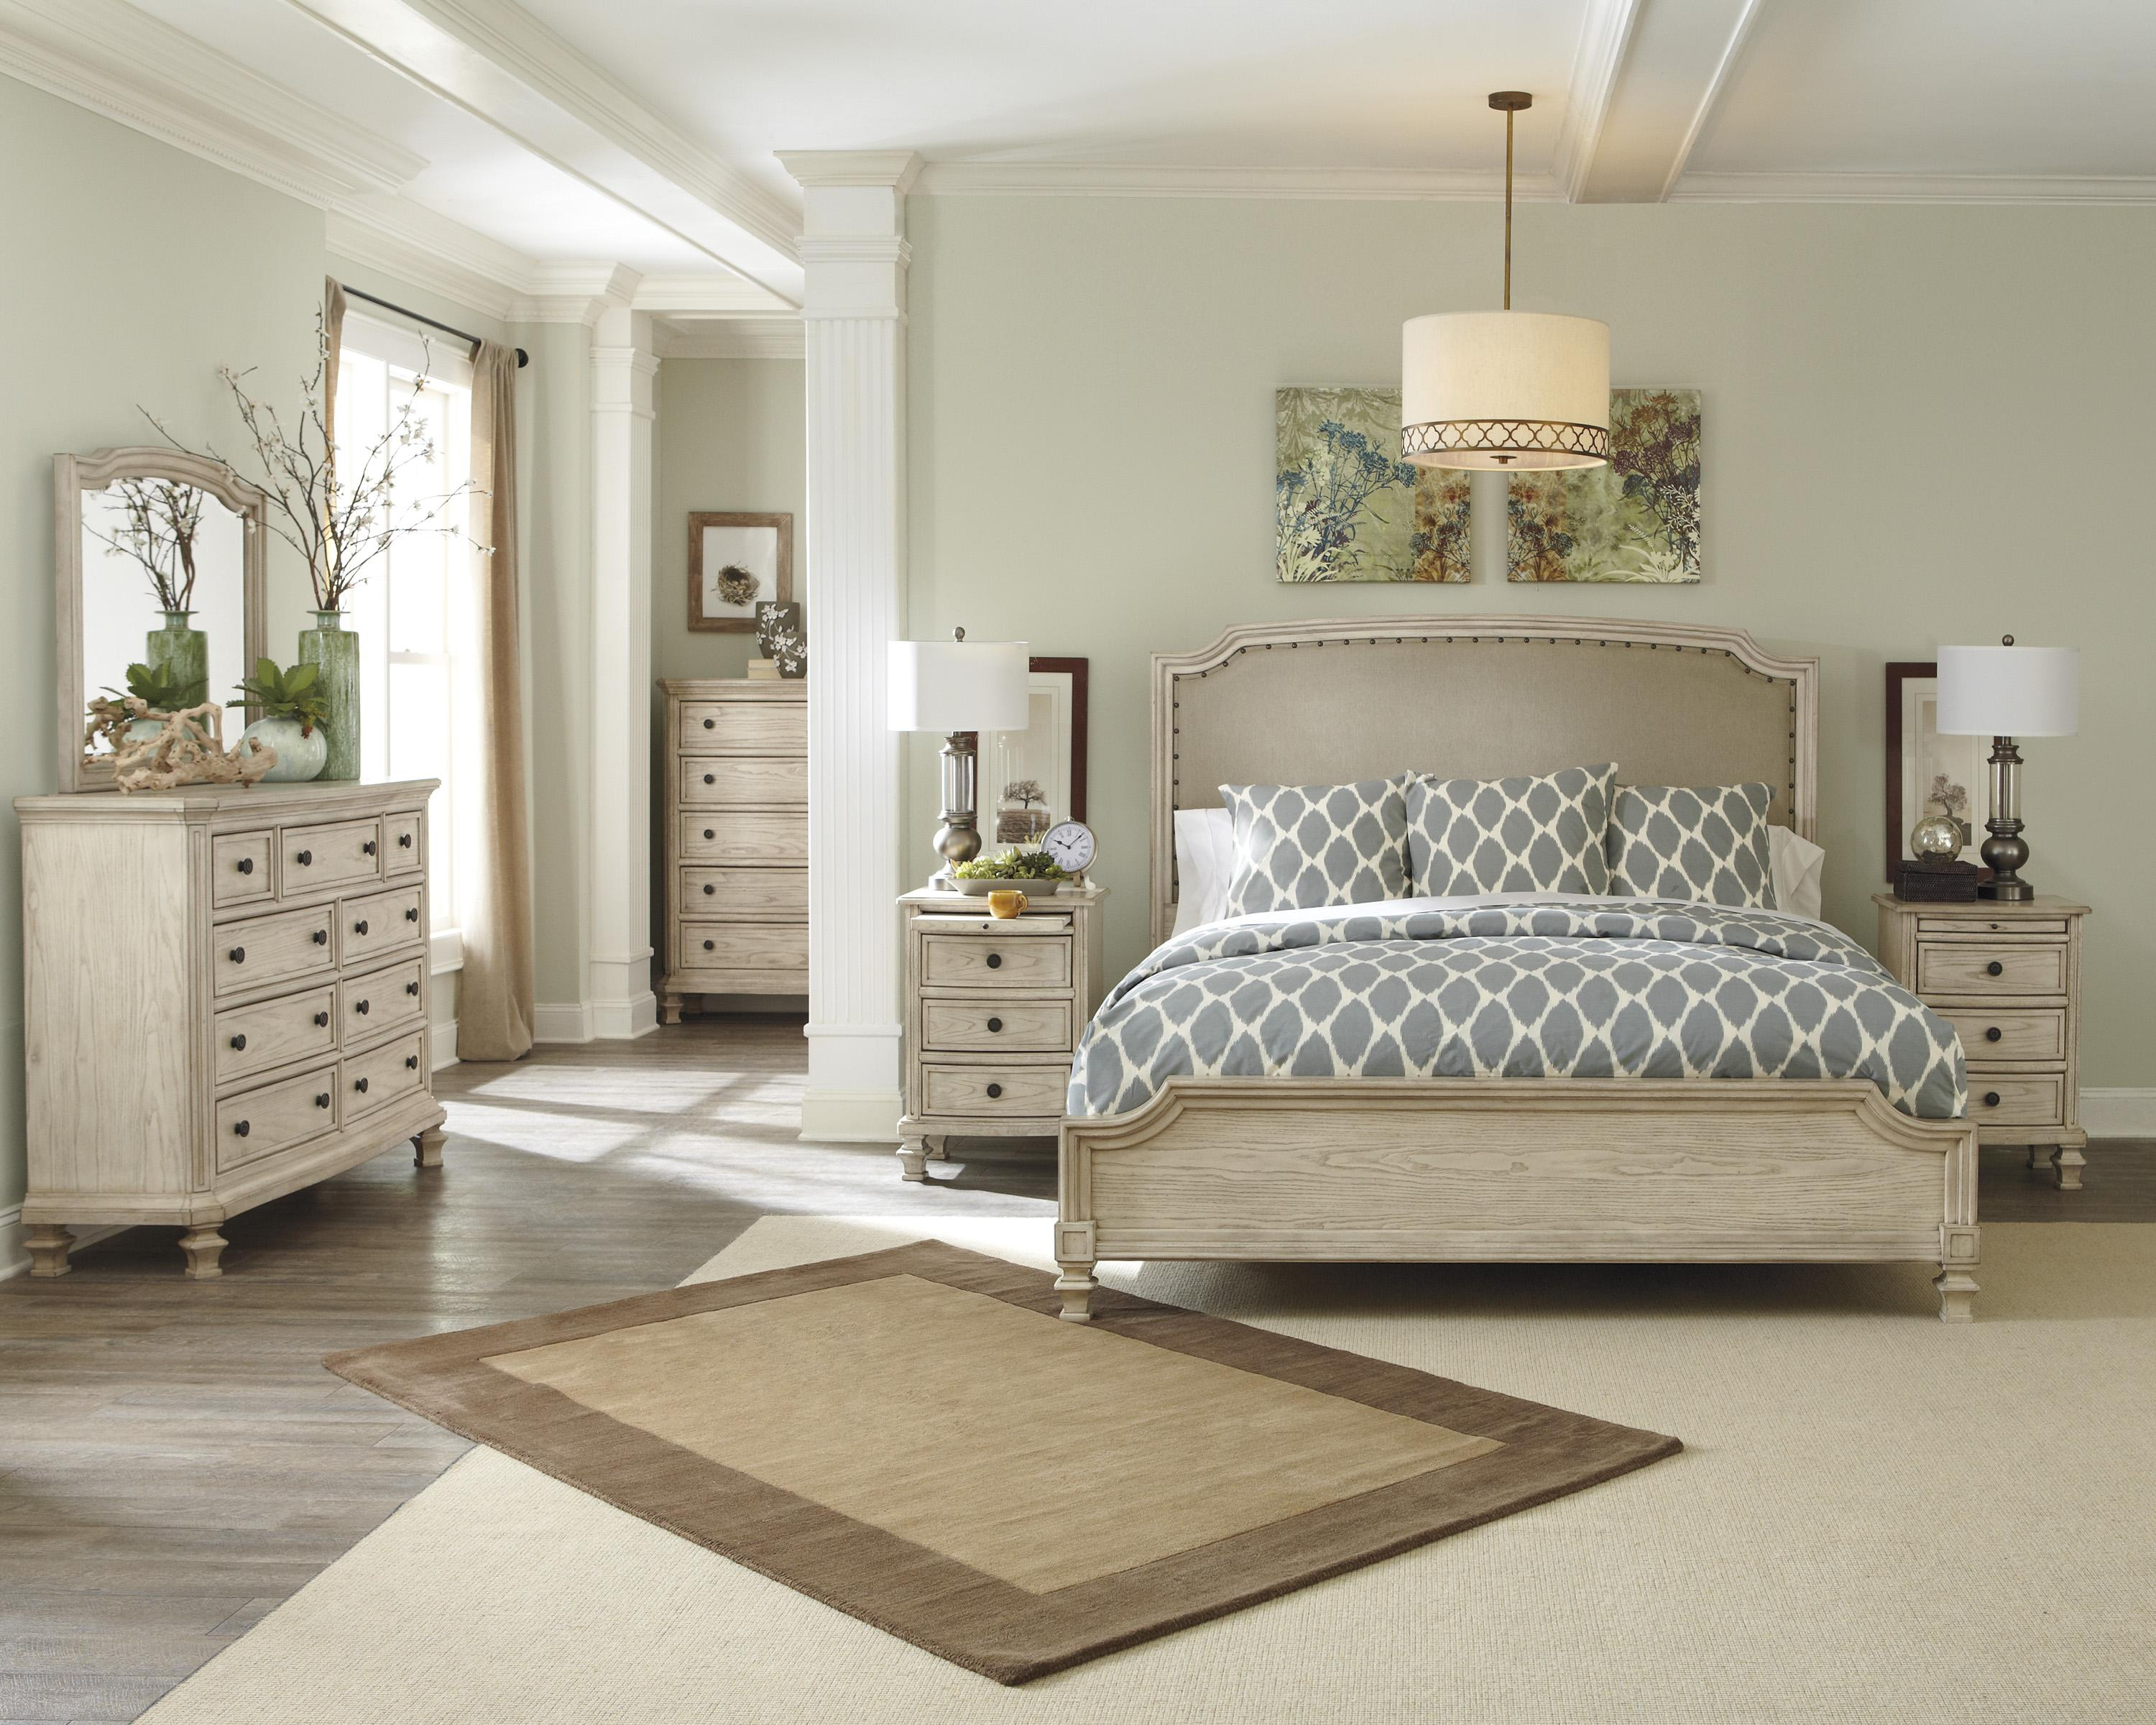 Signature Design by Ashley Demarlos Queen Bedroom Group - Item Number: B693 Q Bedroom Group 2